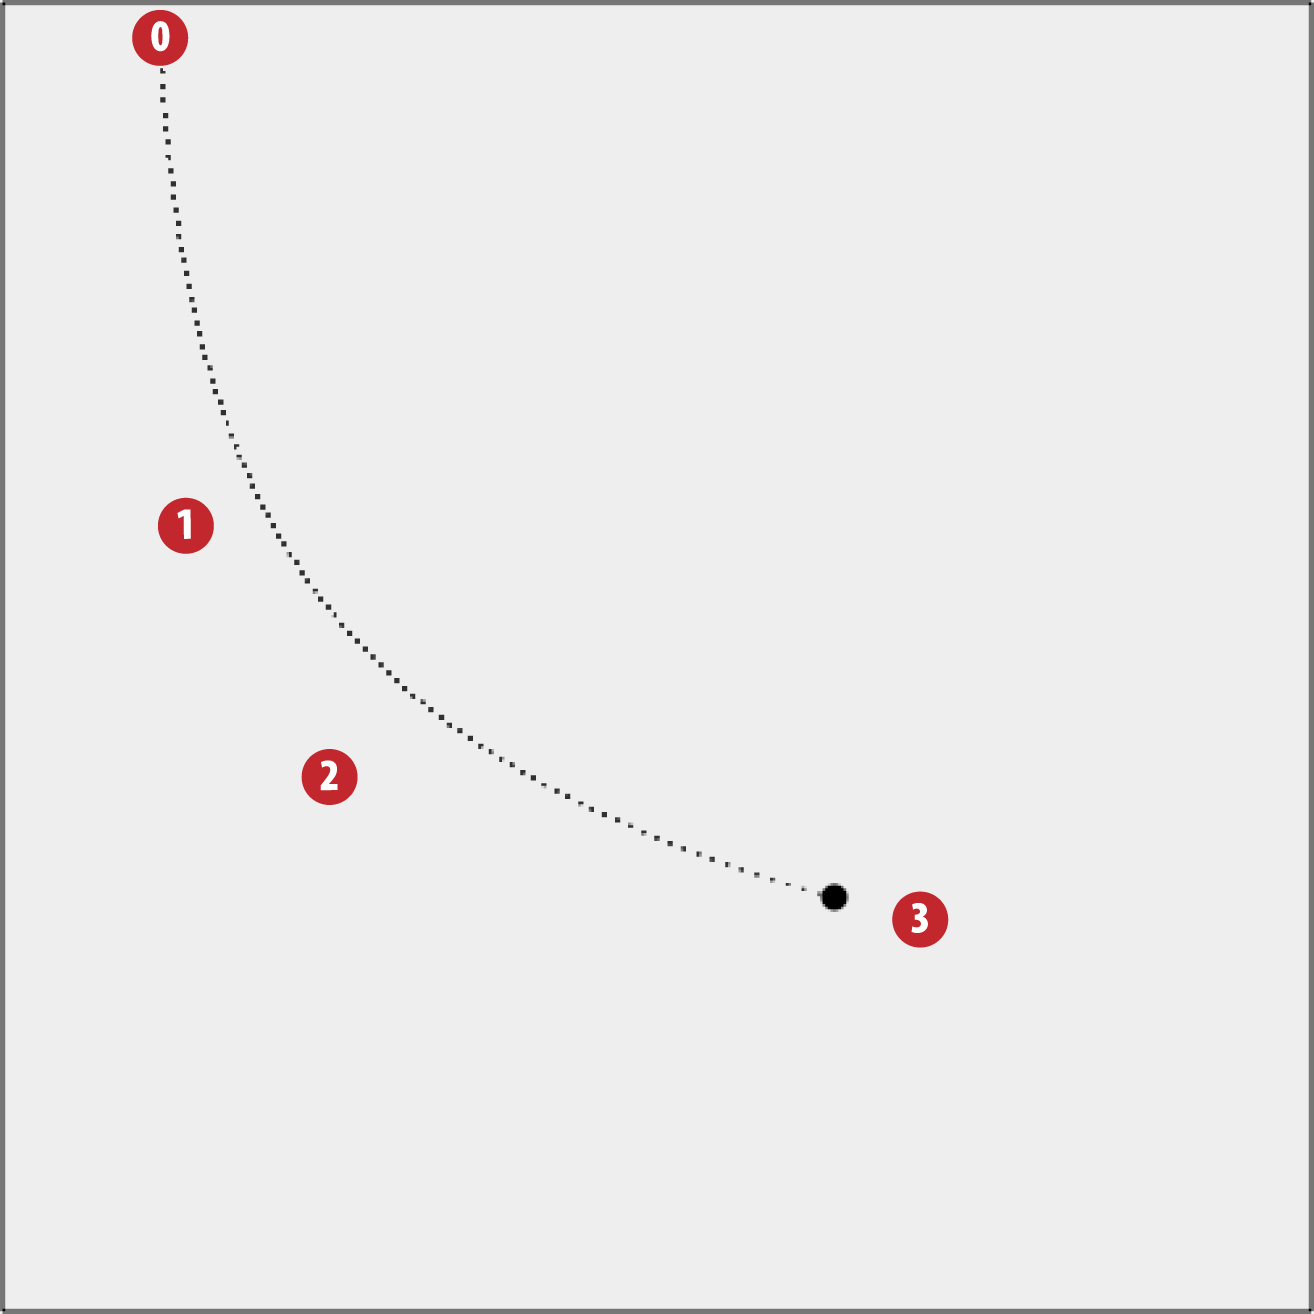 Moving a circle on a Bezier curve